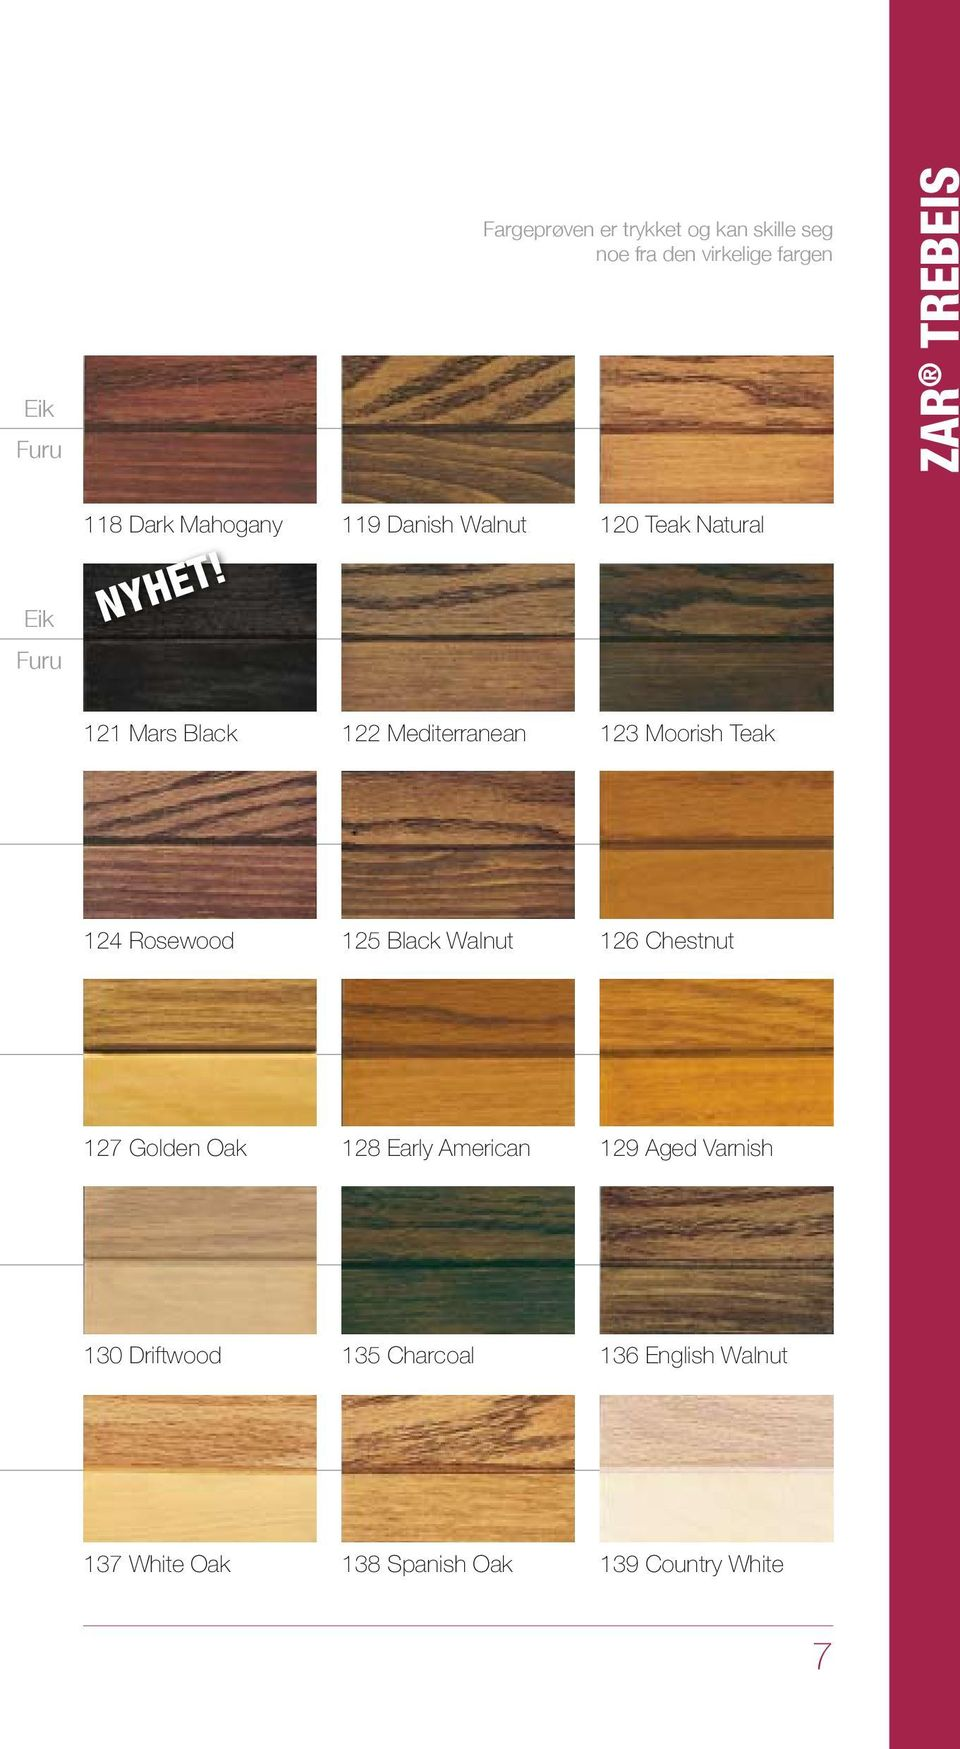 119 Danish Walnut 120 Teak Natural Furu 121 Mars Black 122 Mediterranean 123 Moorish Teak 124